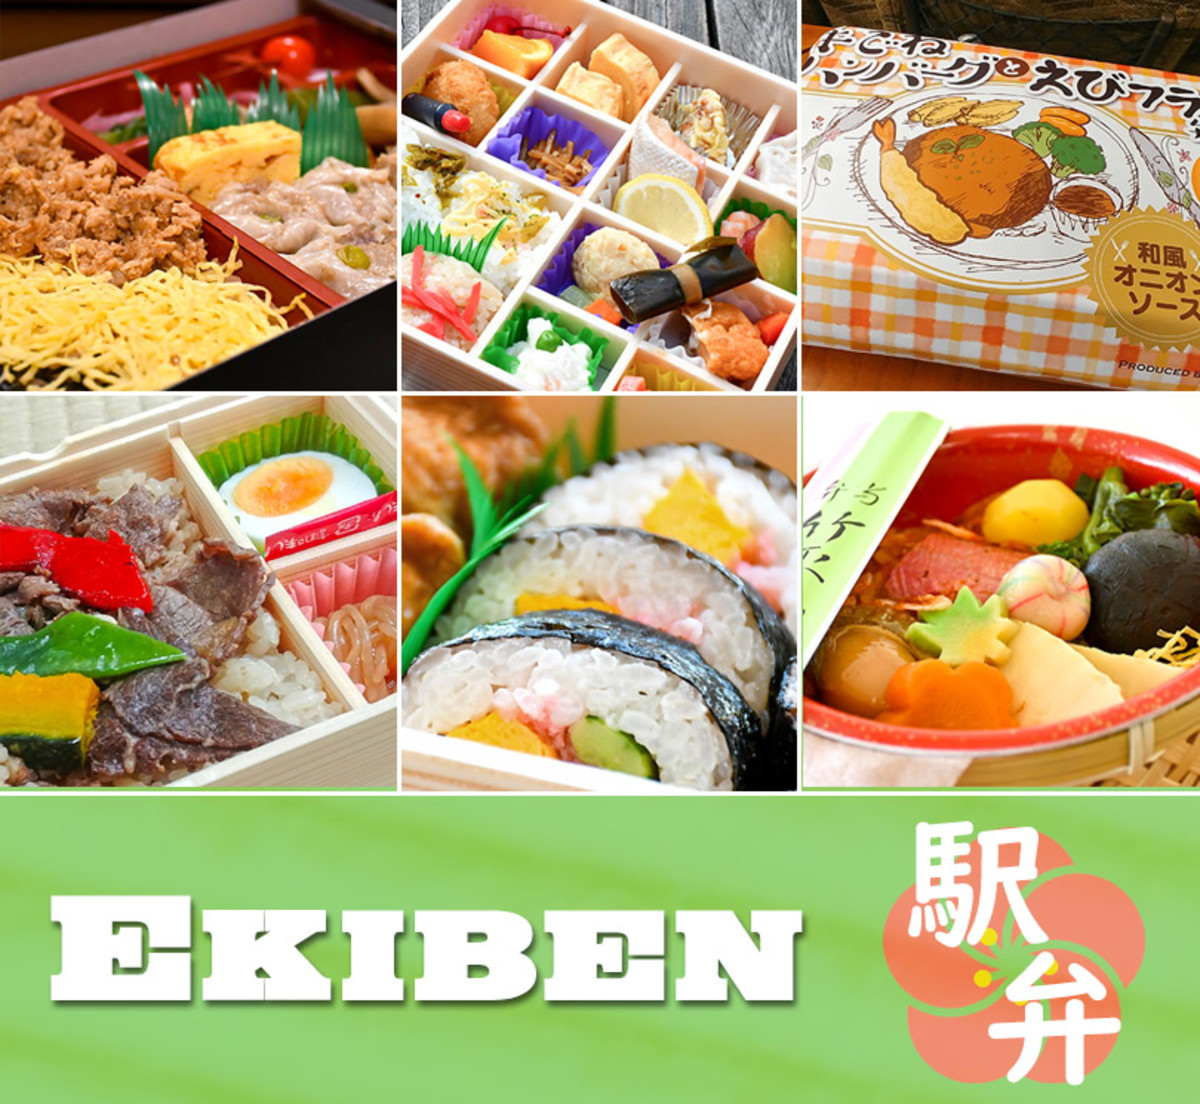 Japanese Ekiben meal boxes. A truly yummy way to travel in Japan.